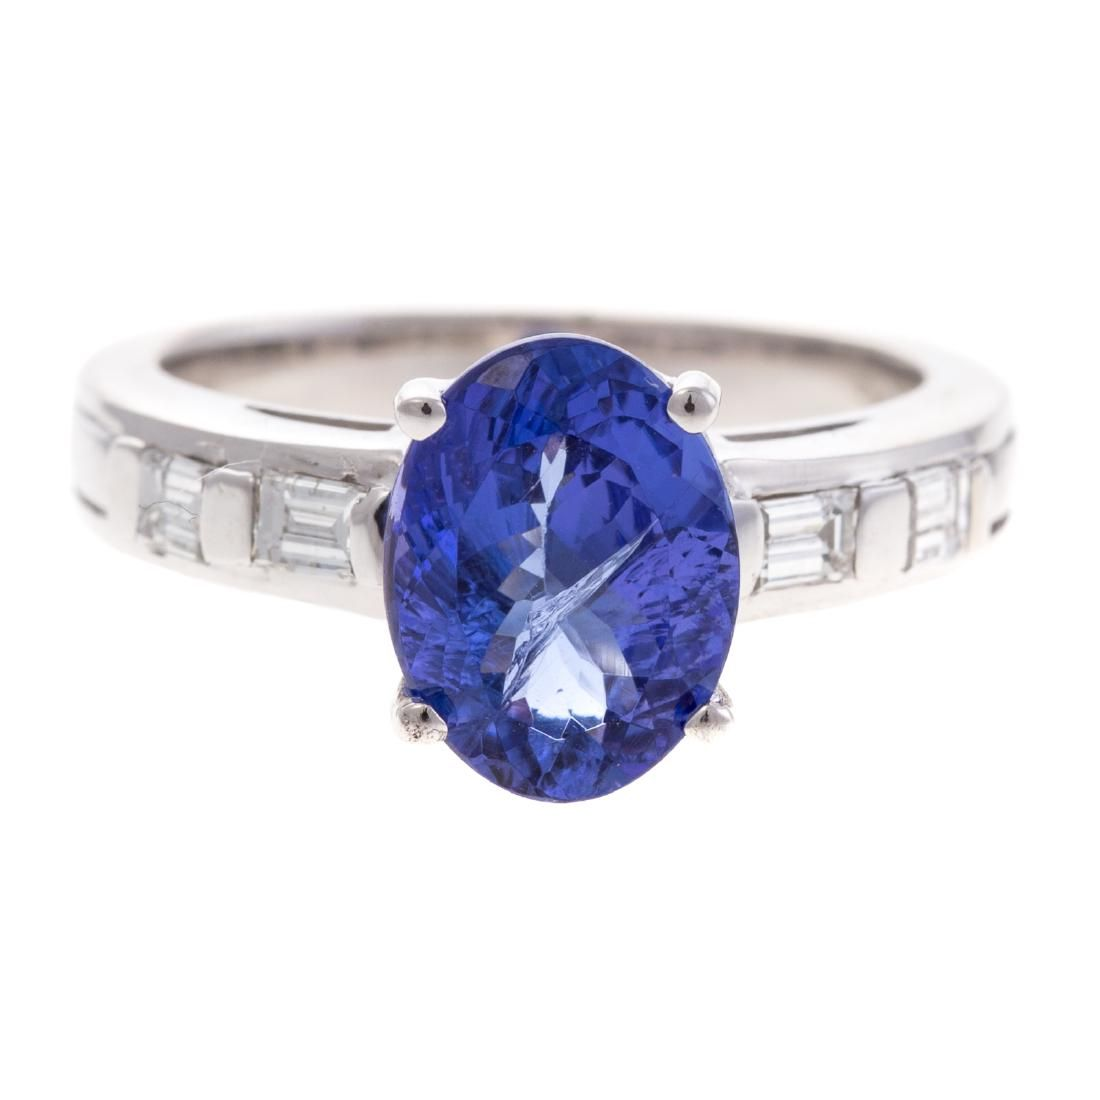 A Lady's Tanzanite & Diamond Ring in 14K Gold